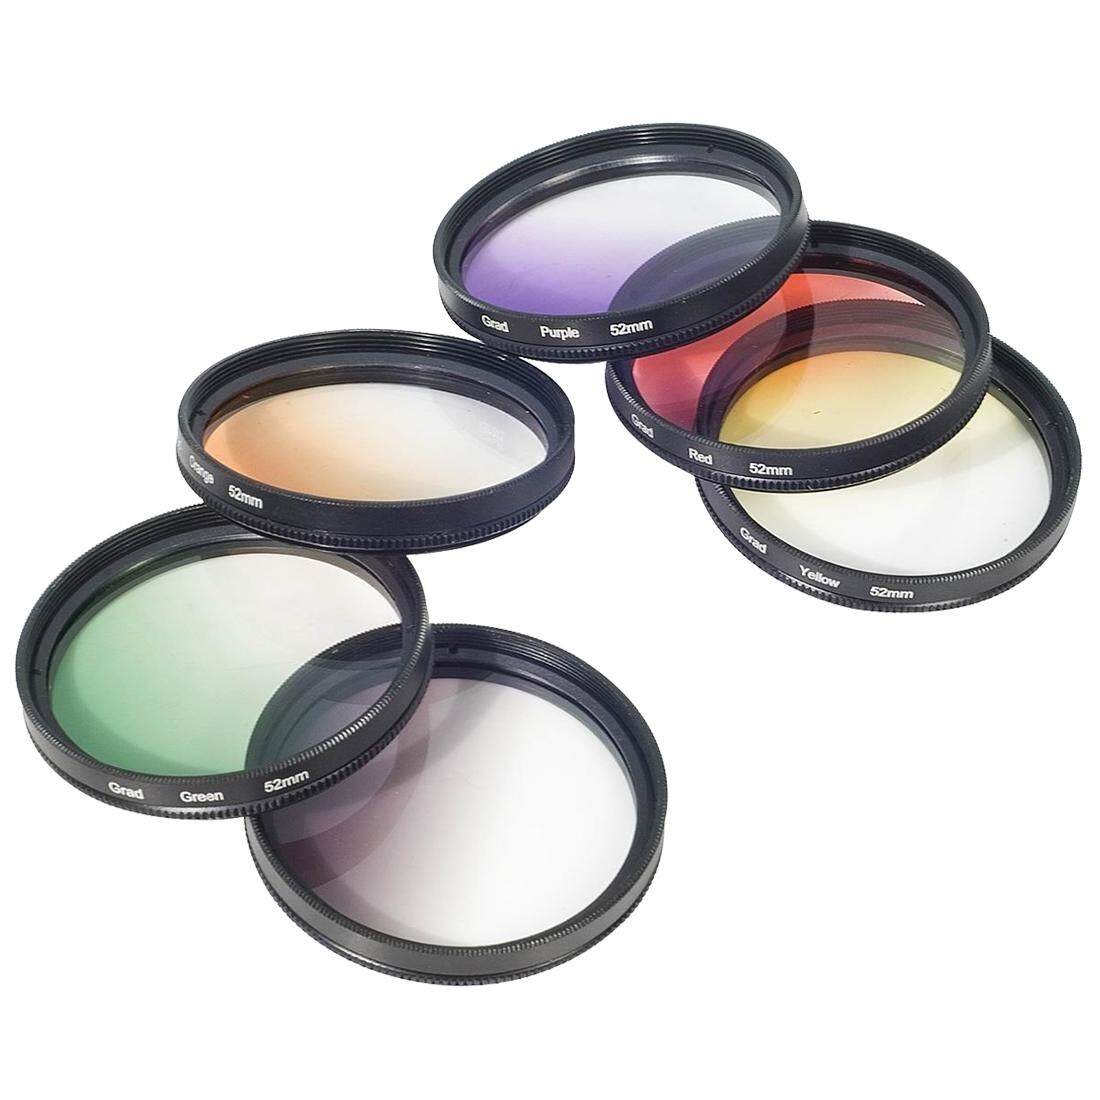 Color Filter Set Gradual 52mm For Nikon D4 D3X D800 D700 D600 D300S D300 D7100 D7000 D5200 D5100 D5000 D3200 D3100 D3000 D90 D80 D70 D60 D50 D40 LF139